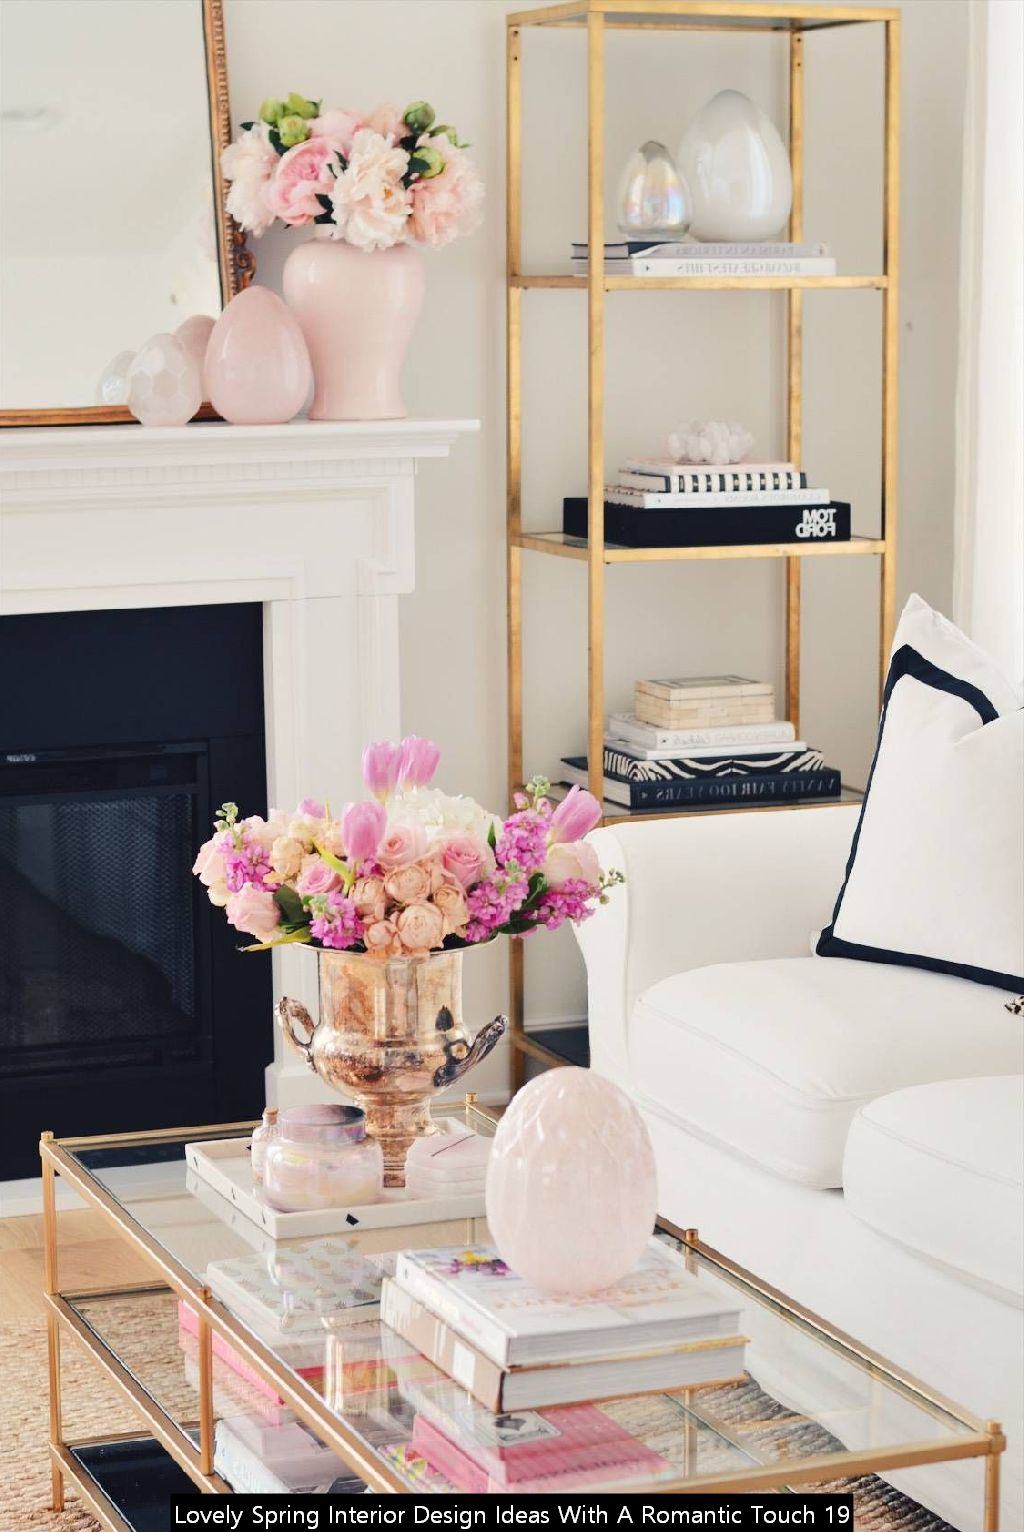 Lovely Spring Interior Design Ideas With A Romantic Touch 19